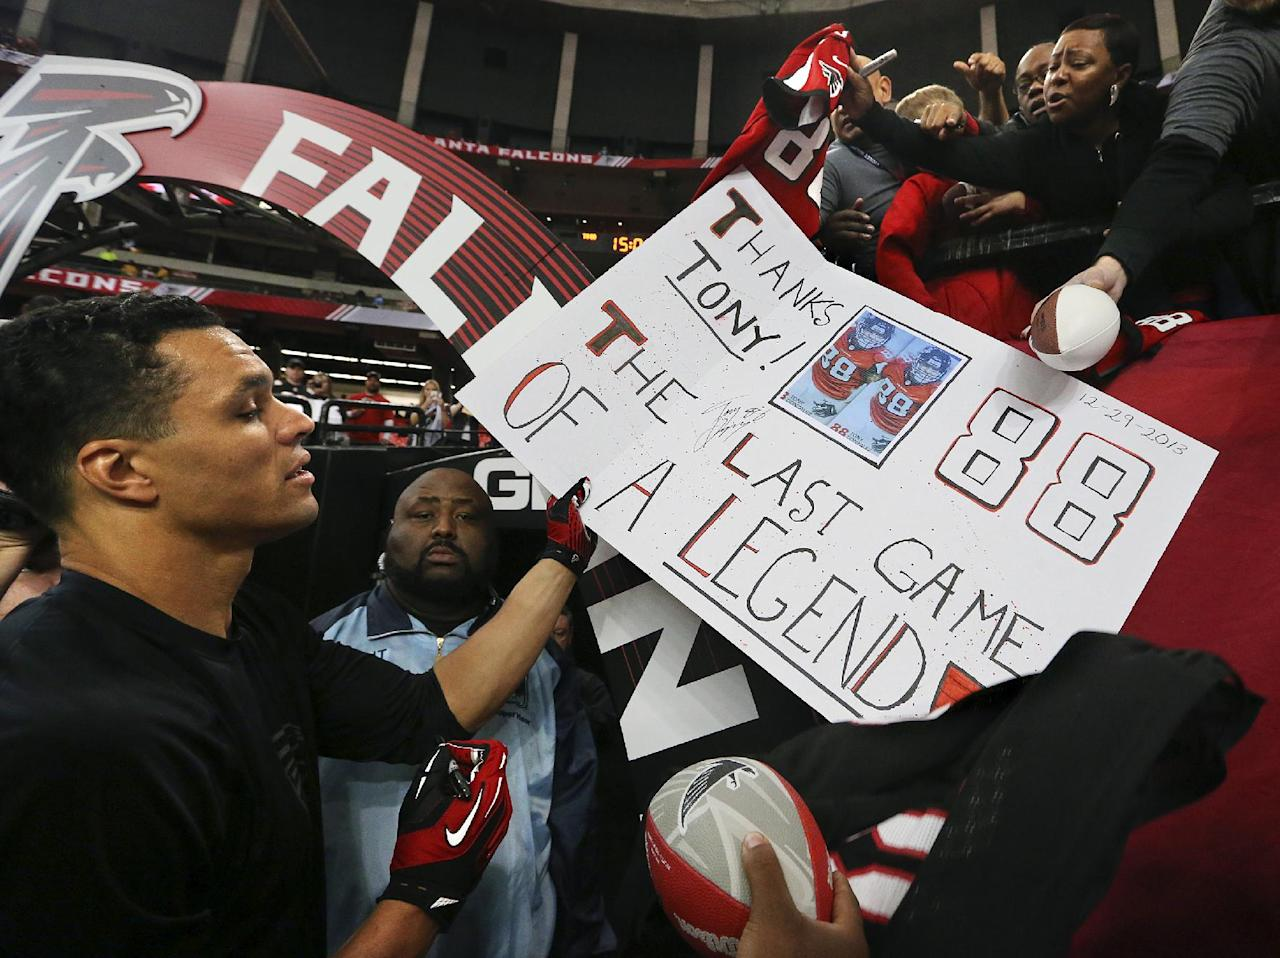 Atlanta Falcons tight end Tony Gonzalez signs autographs for fans before an NFL football game against the Carolina Panthers on Sunday, Dec. 29, 2013, in Atlanta. (AP Photo/Atlanta Journal-Constitution, Curtis Compton)